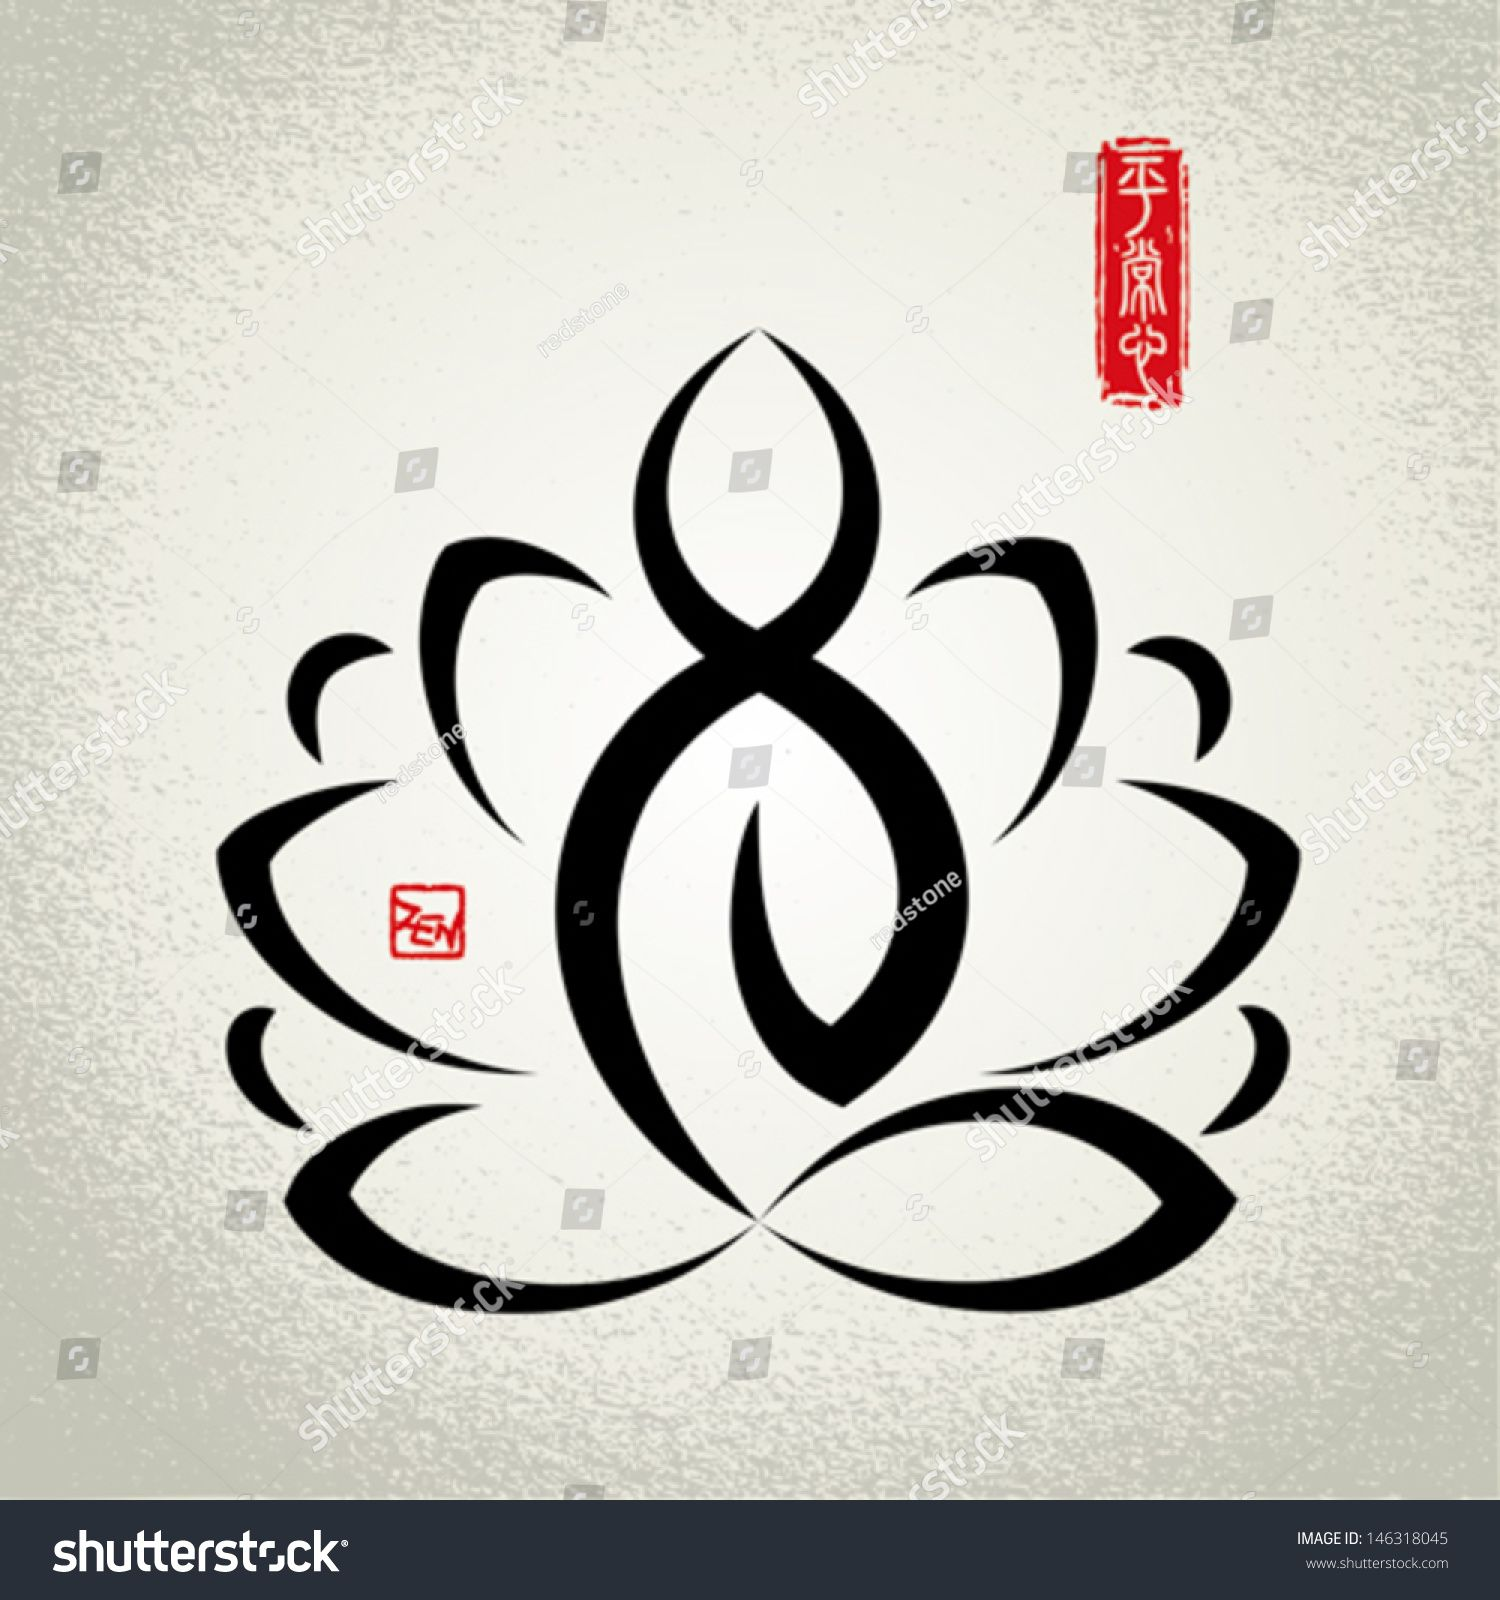 Lotus And Zen Meditational Of Chinese Meaningjust Normal